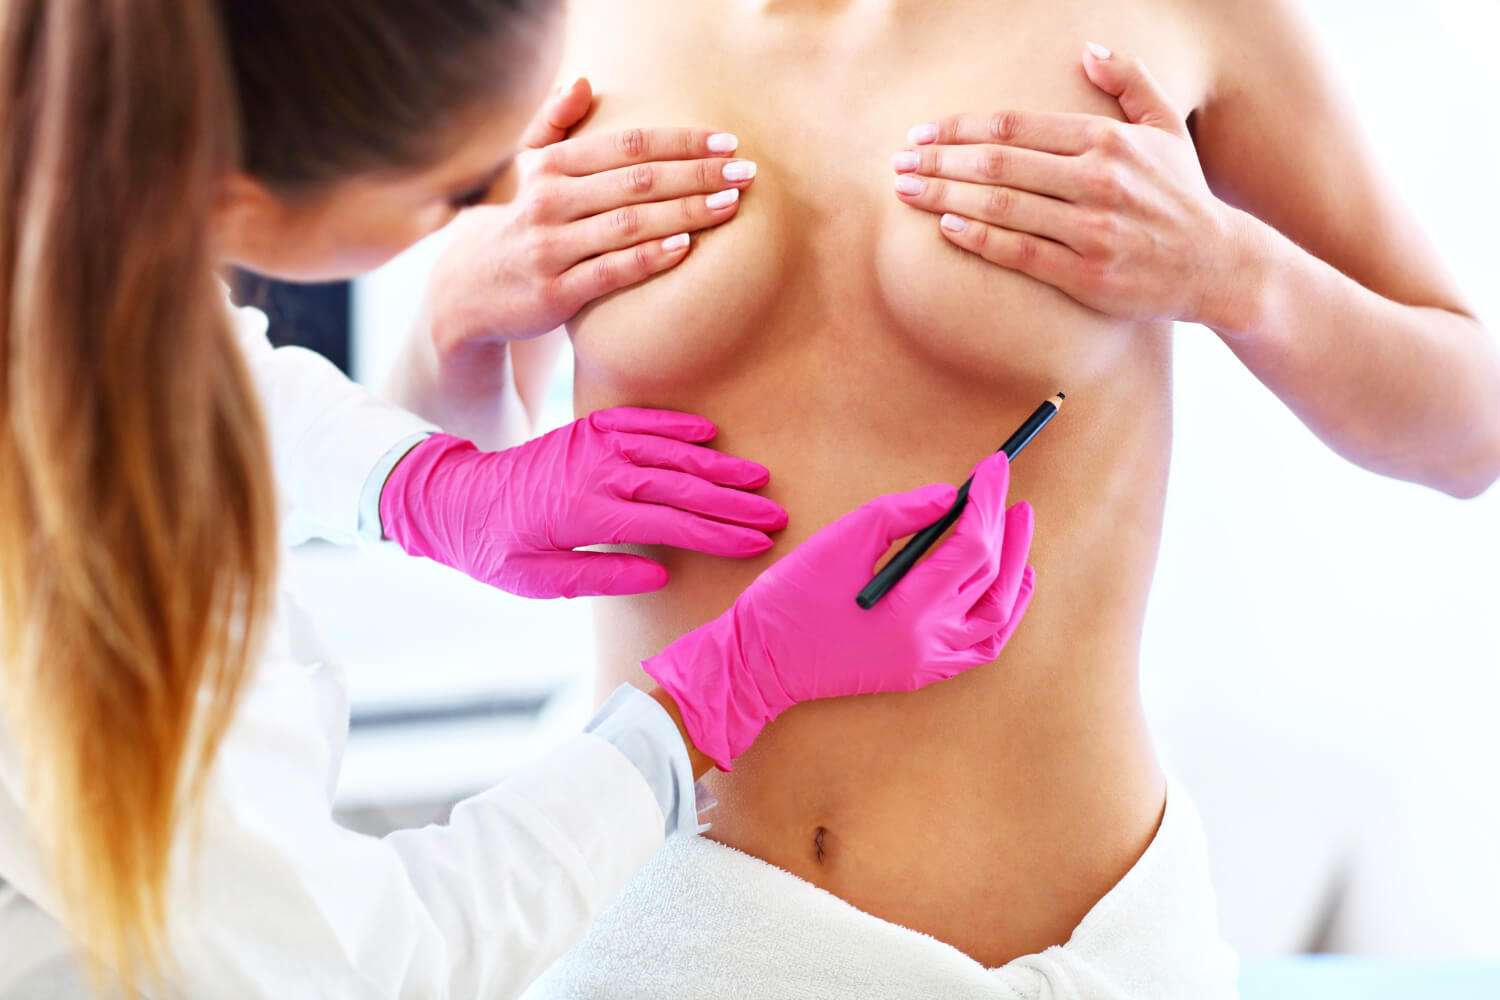 How to apply breast lift